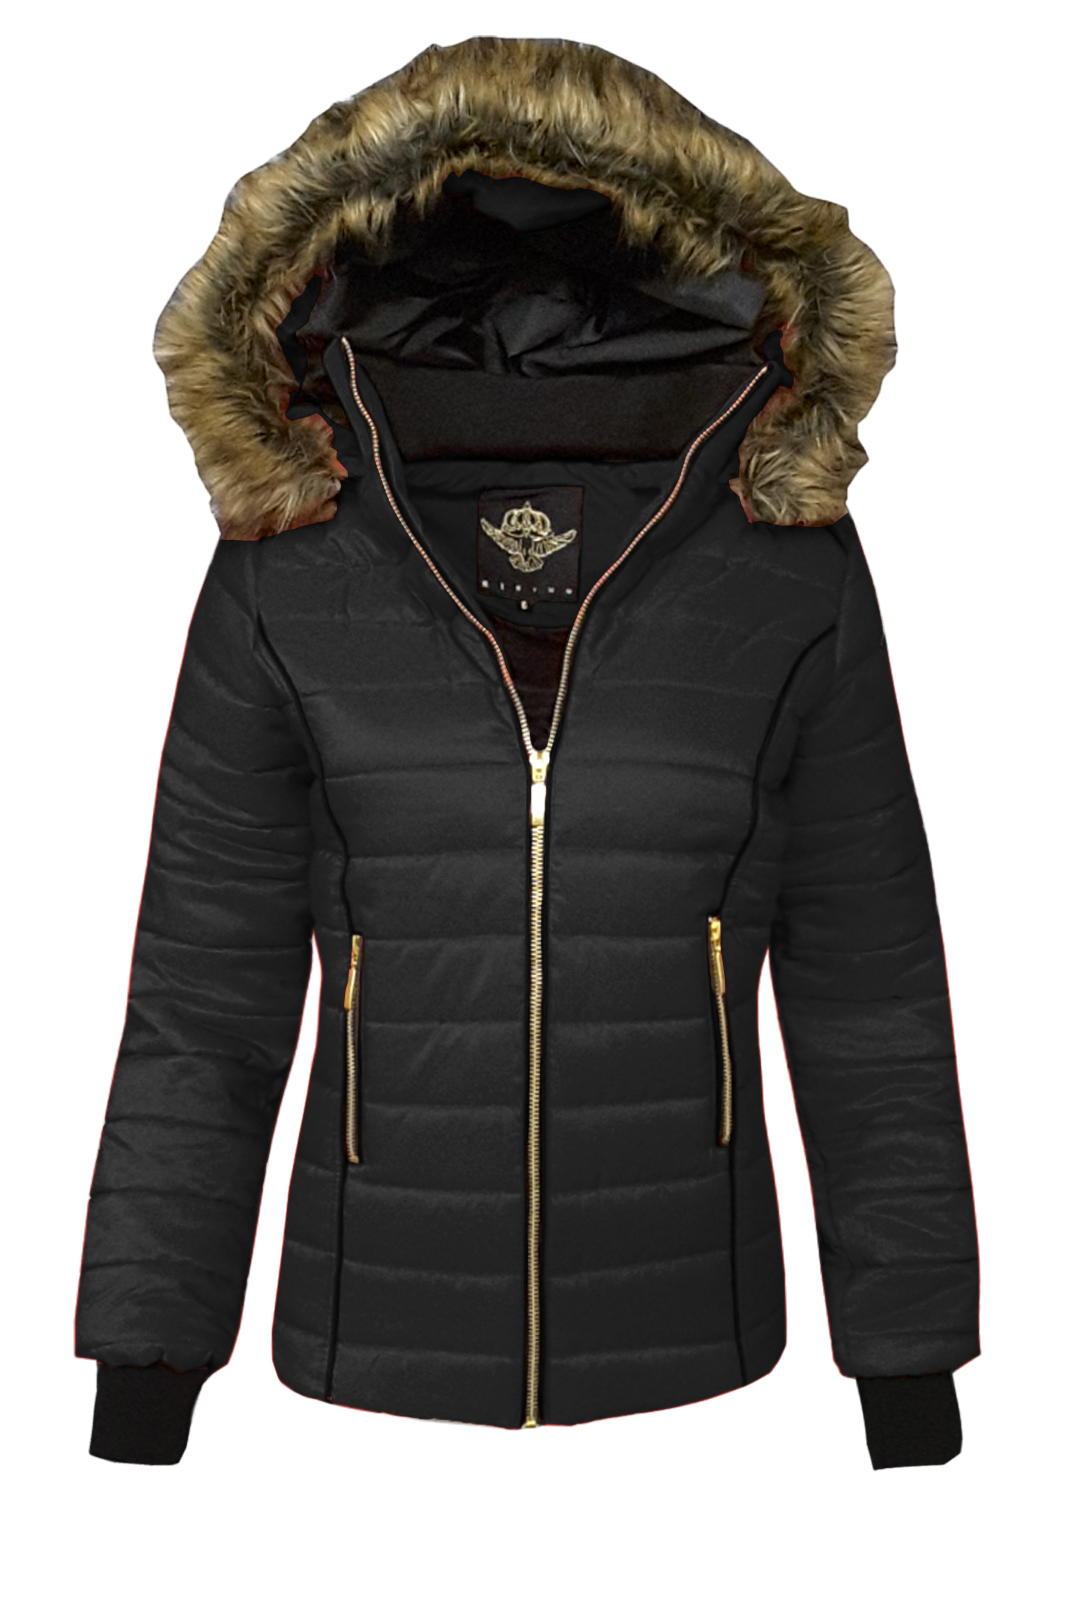 Find black puffer jacket and black puffer jacket north face from a vast selection of Women's Clothing. Get great deals on eBay!